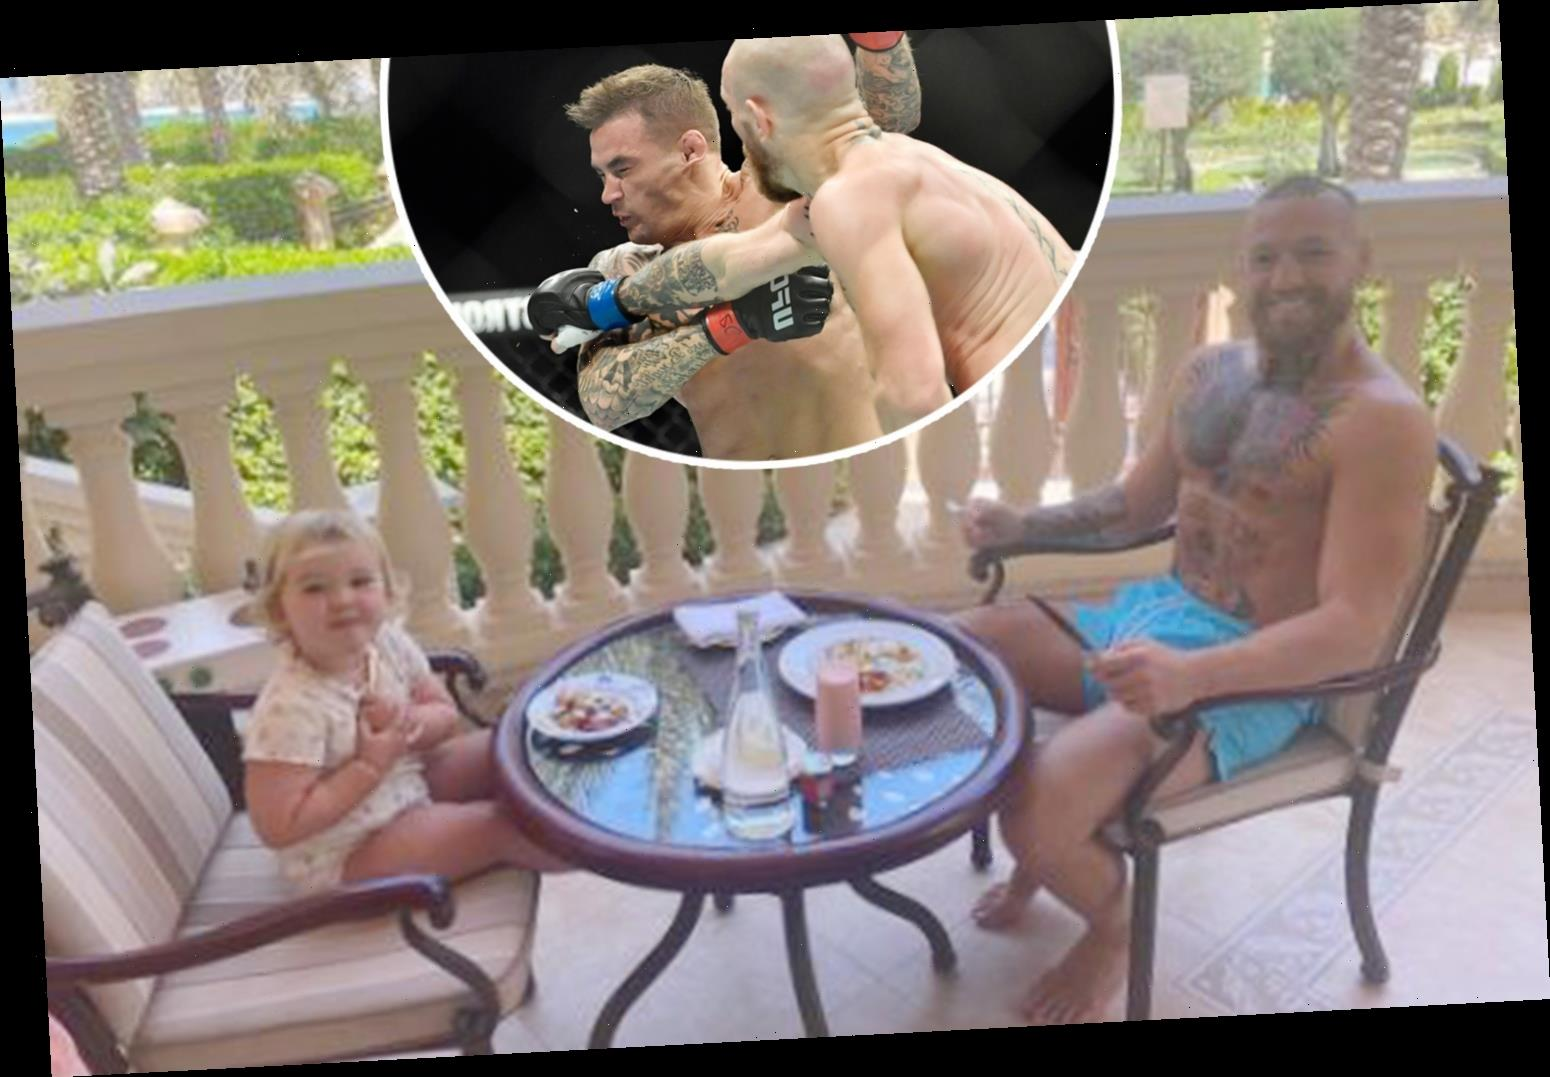 Conor McGregor shares adorable breakfast with young daughter as UFC star prepares to face Dustin Poirier in third fight